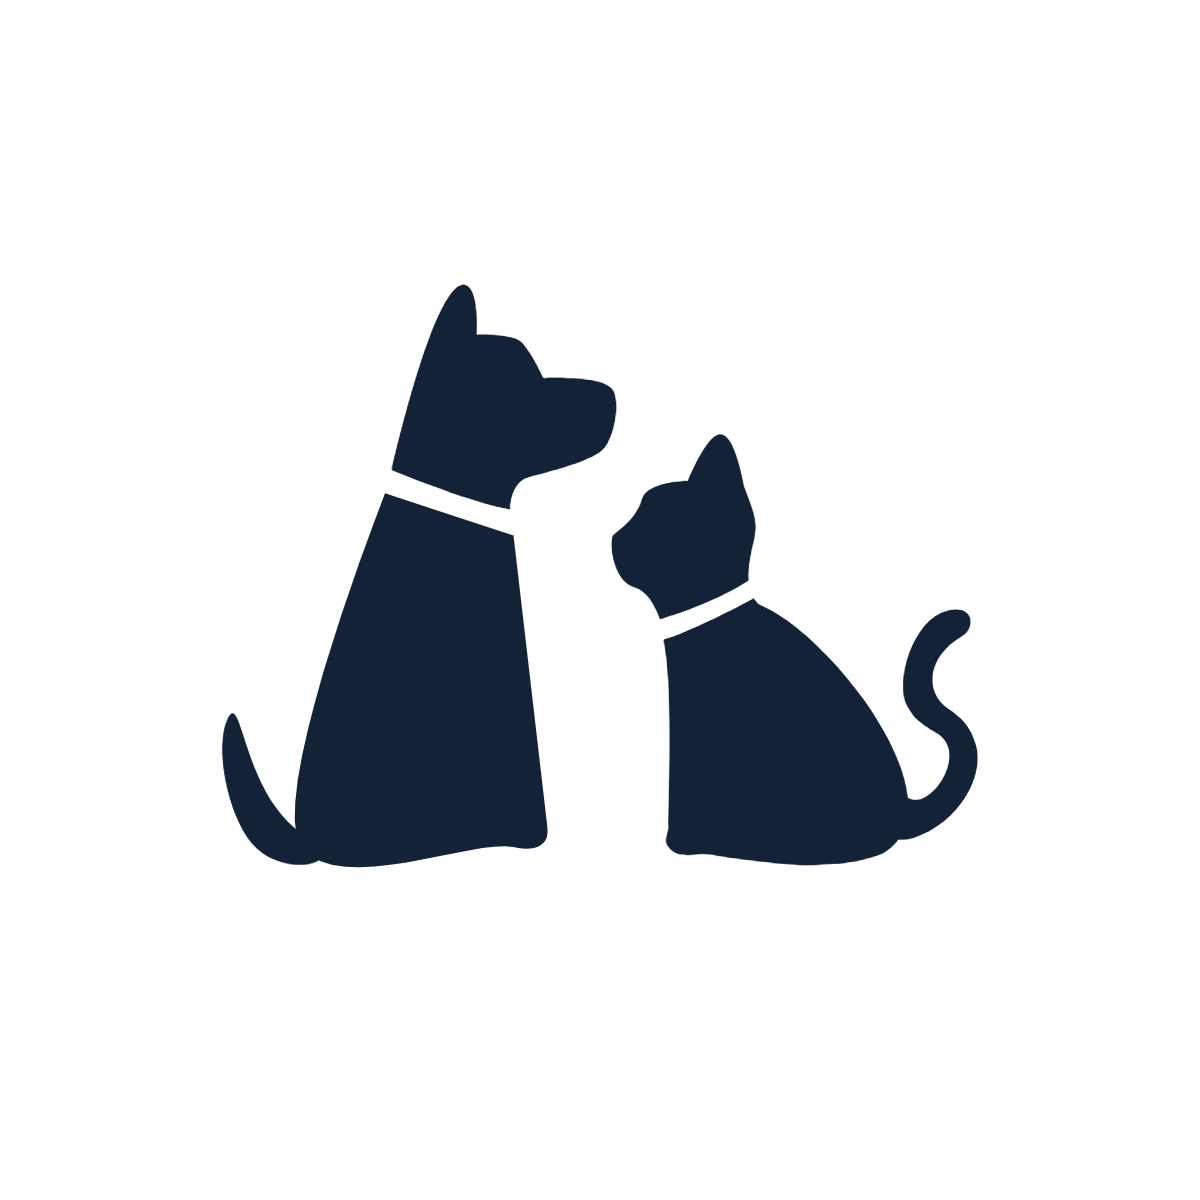 Emotional Support and Service Animal Evaluation Diagnostic Icon